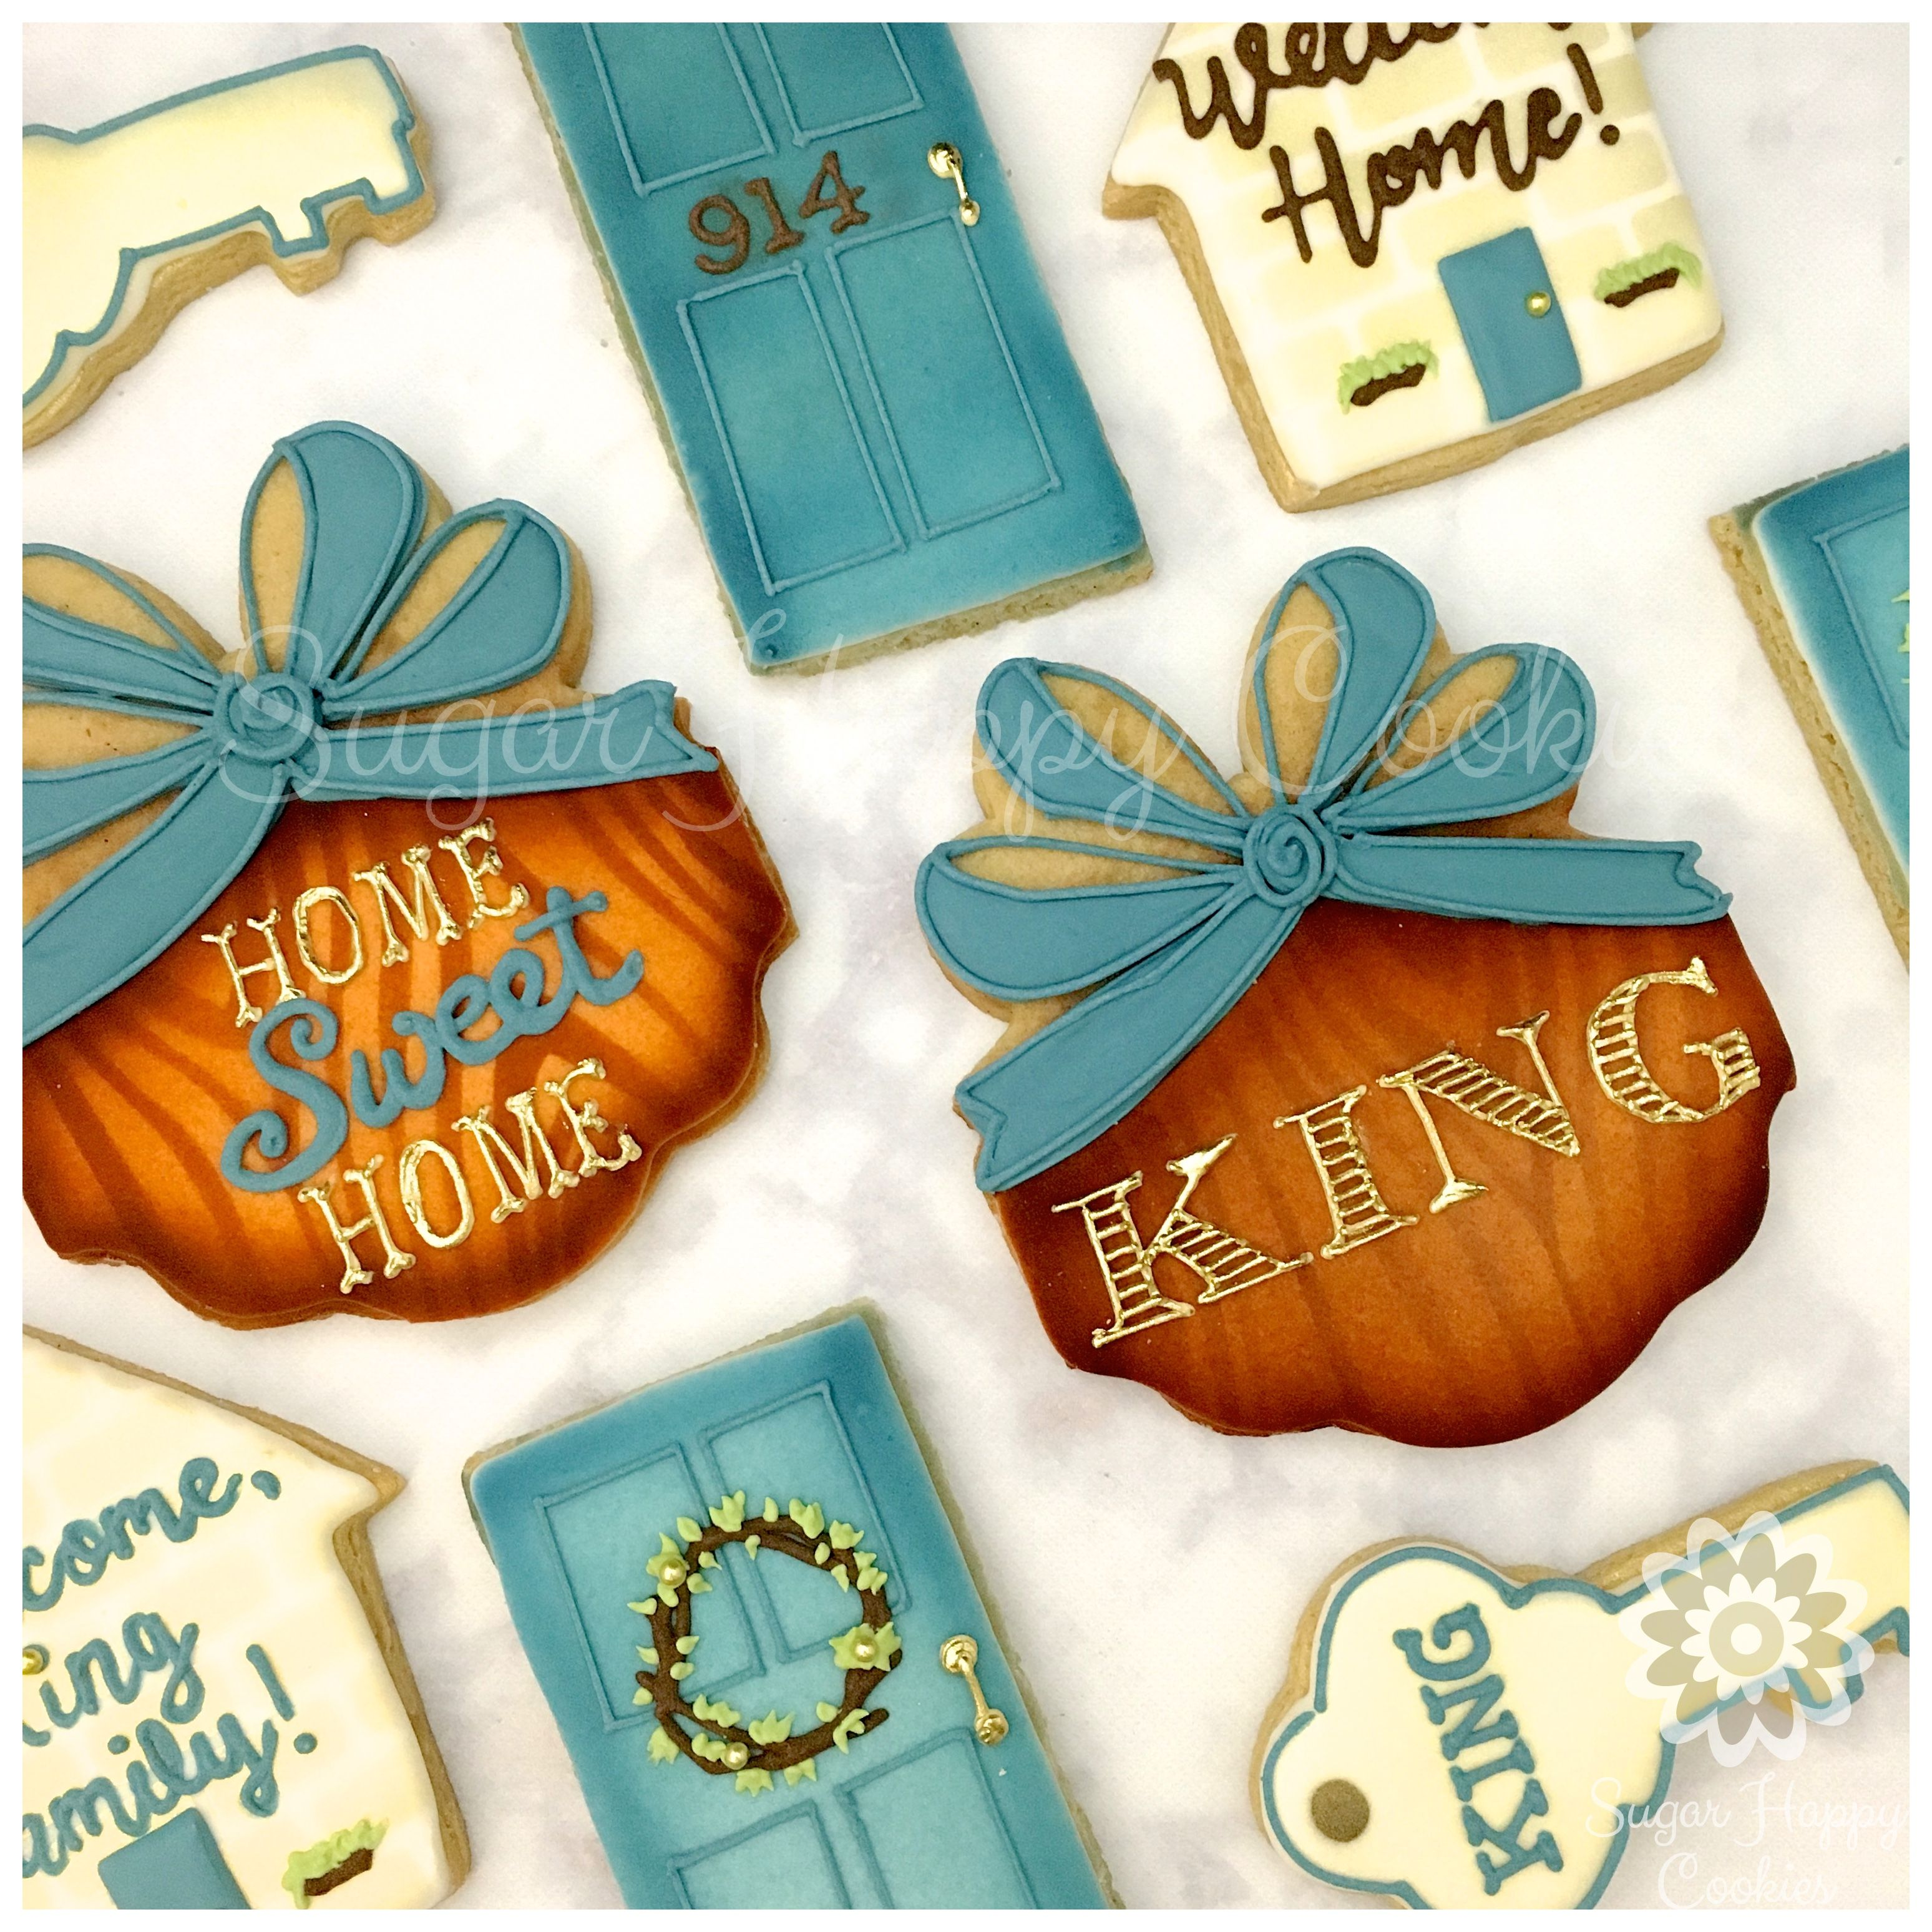 Home Design Gift Ideas: Welcome Home Gift , House Warming Gift , Realtor Gift , Sugar